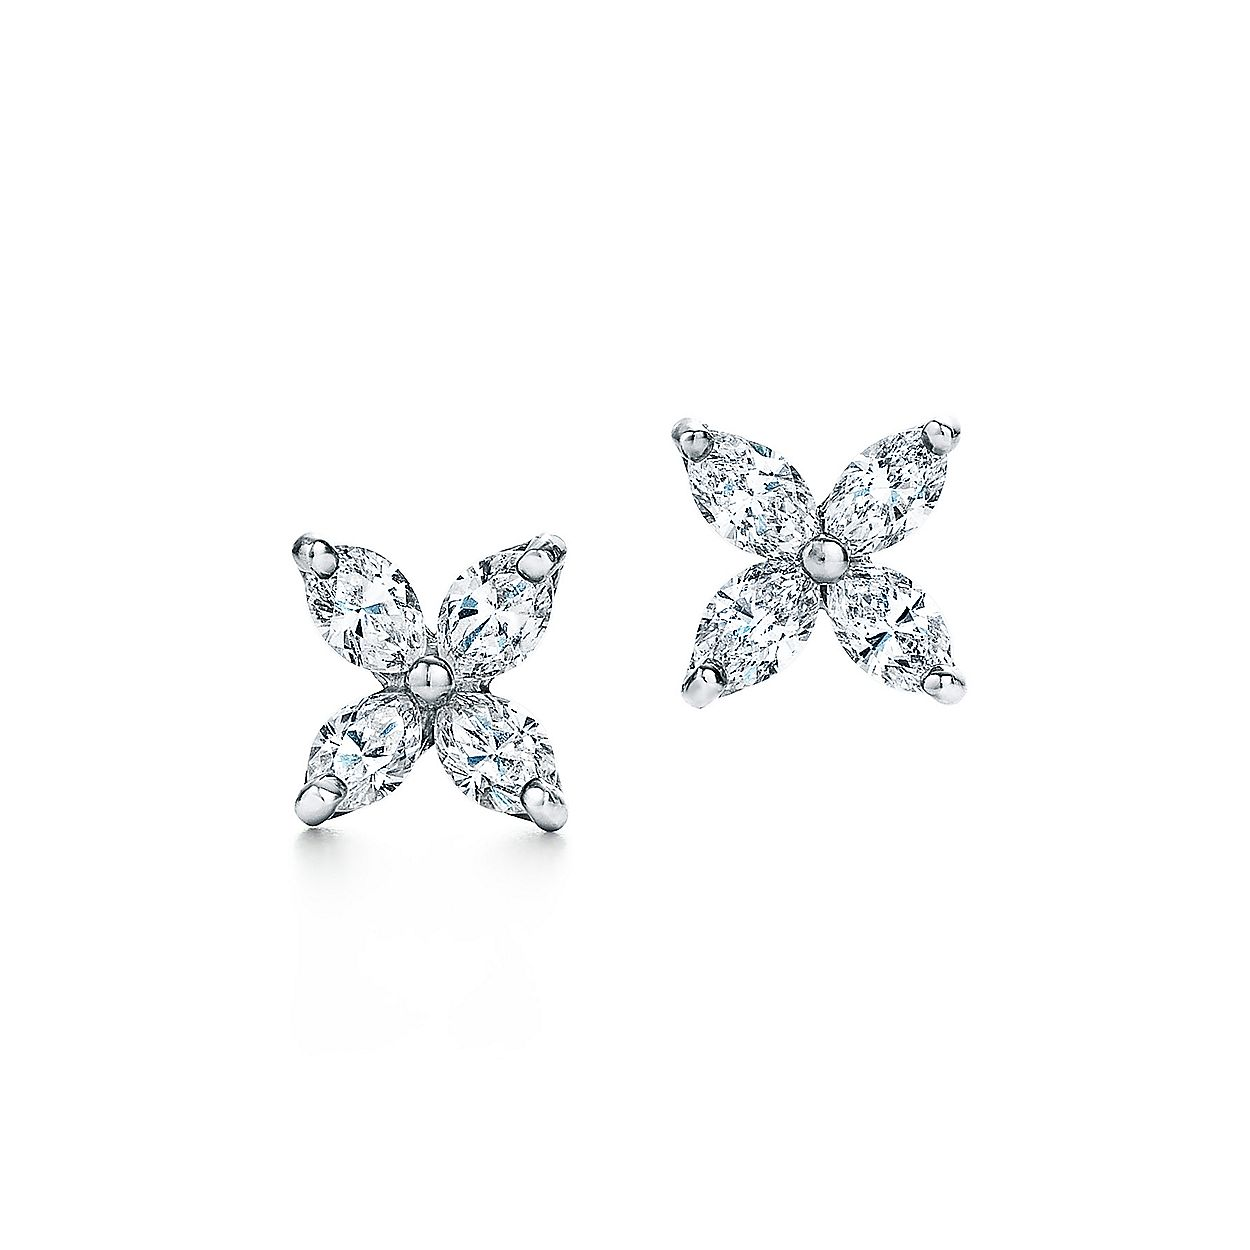 9641a4251 Tiffany Victoria® earrings in platinum with diamonds, small ...